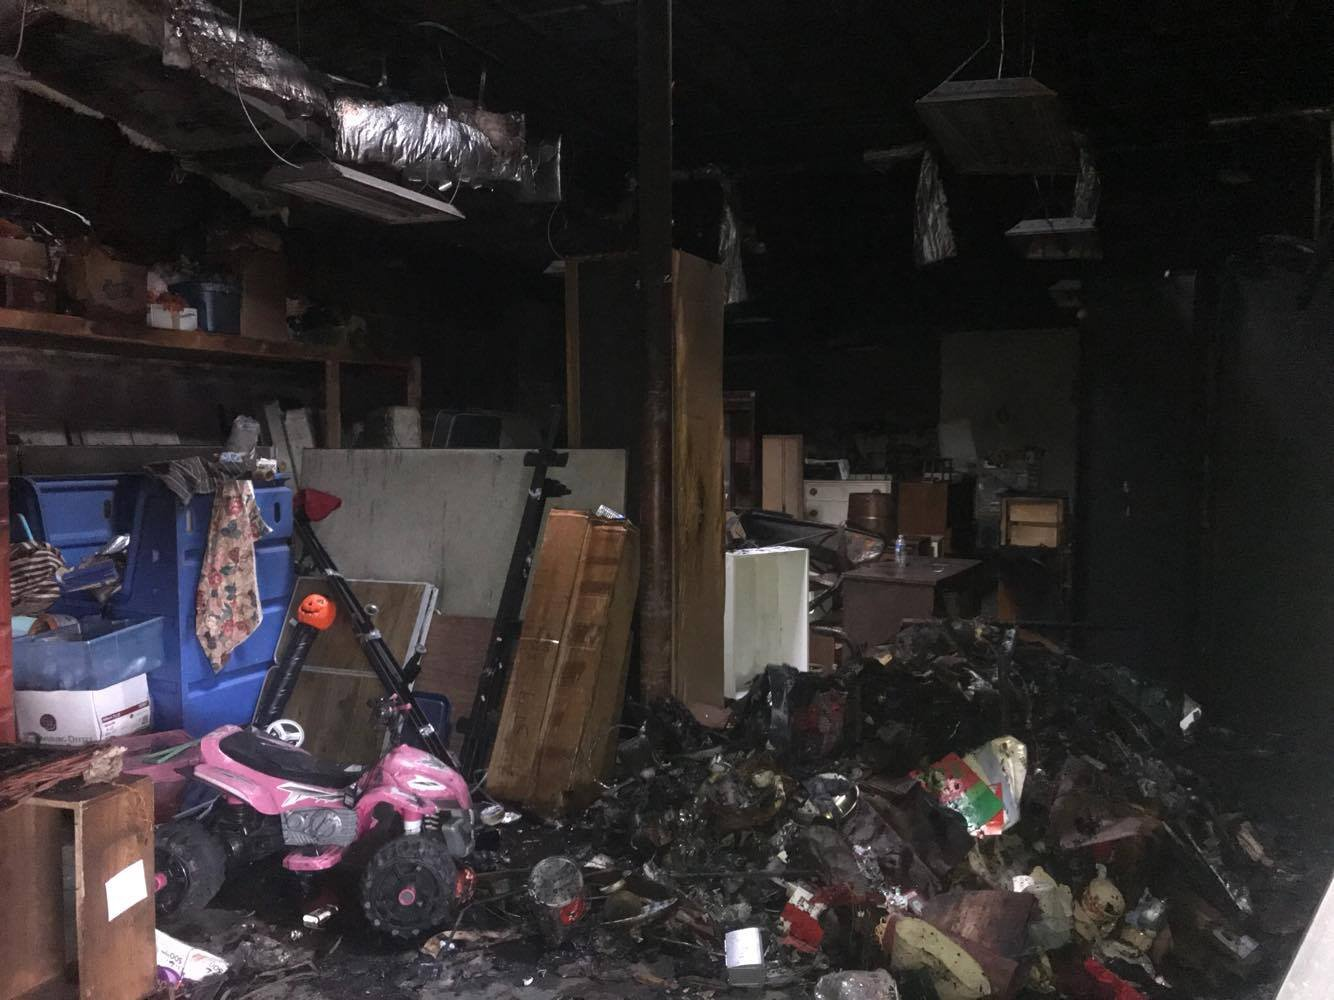 Heavy smoke made it hard for firefighters to navigate through the store's back room inventory to get to the flames.